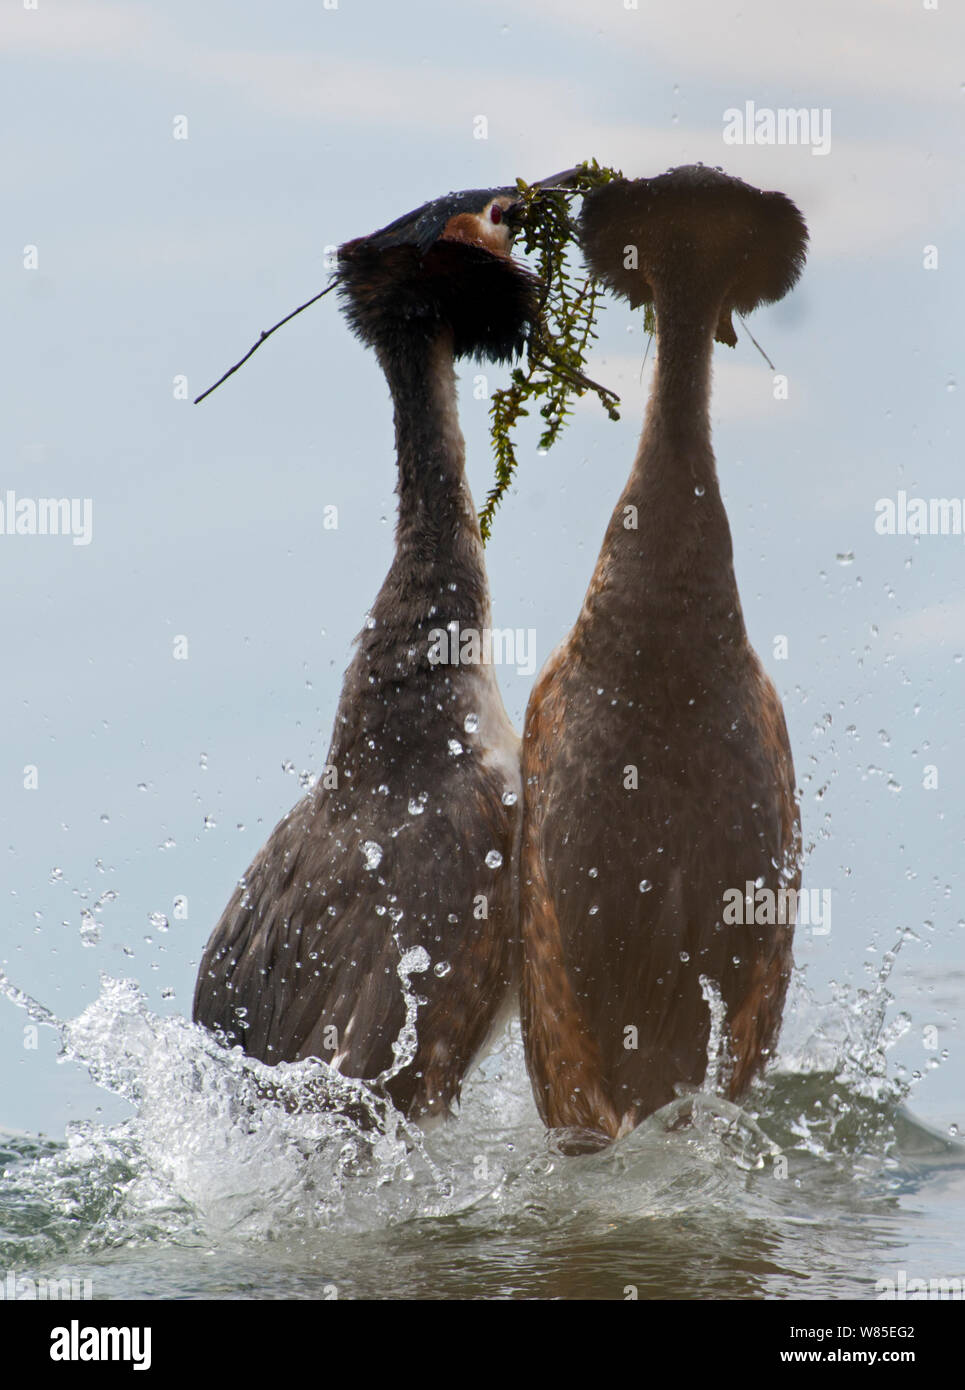 Great-crested grebe (Podiceps cristatus) performing weed dance as part of courtship display, Lake Geneva, Switzerland, March. Stock Photo